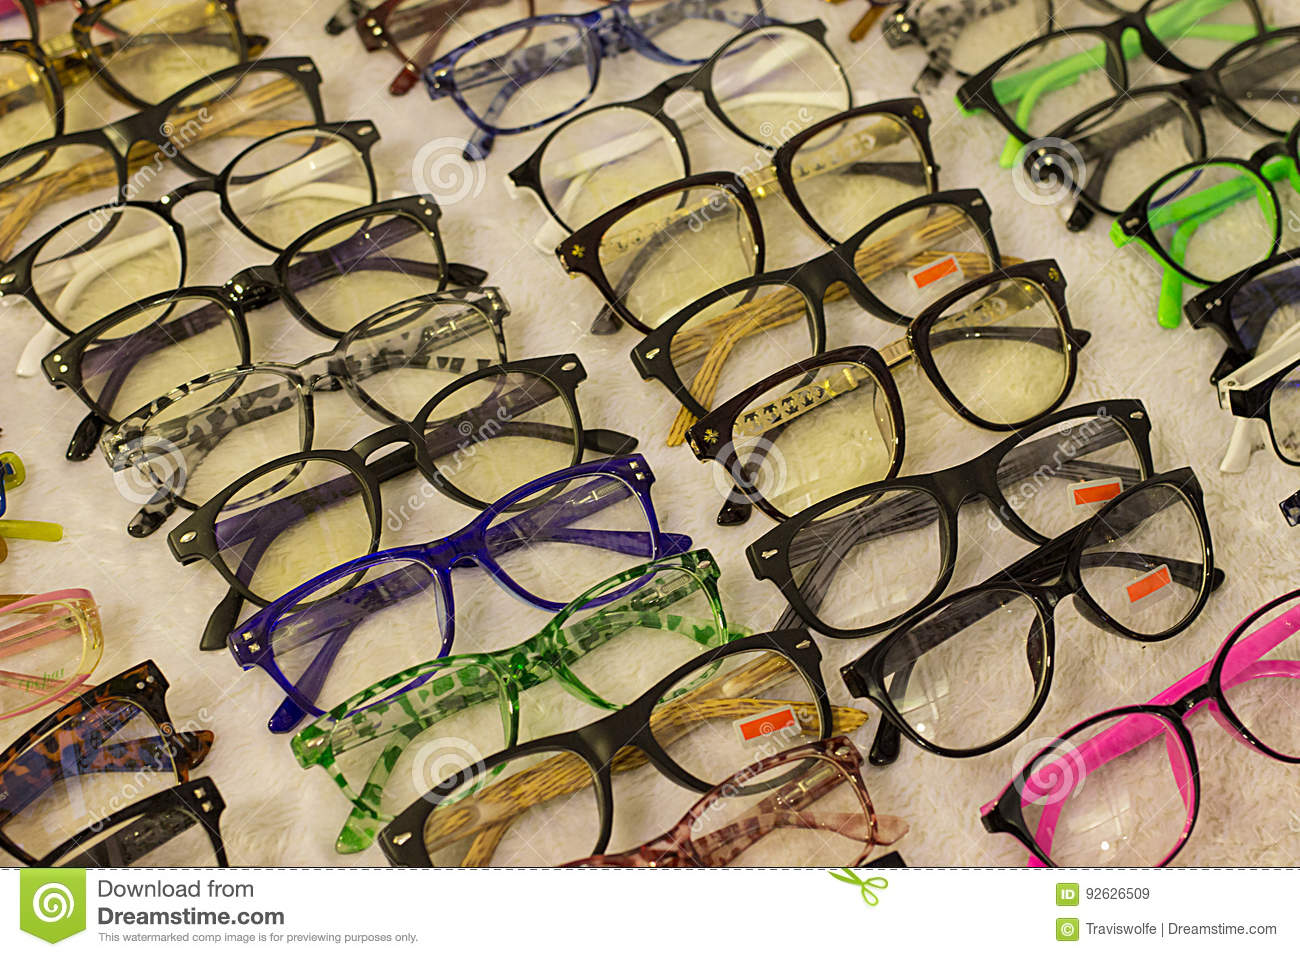 96302f0f47 Assorted glasses at apparel and accessory shop. Cheap apparel and high  quality fashion at discounts and promotions.